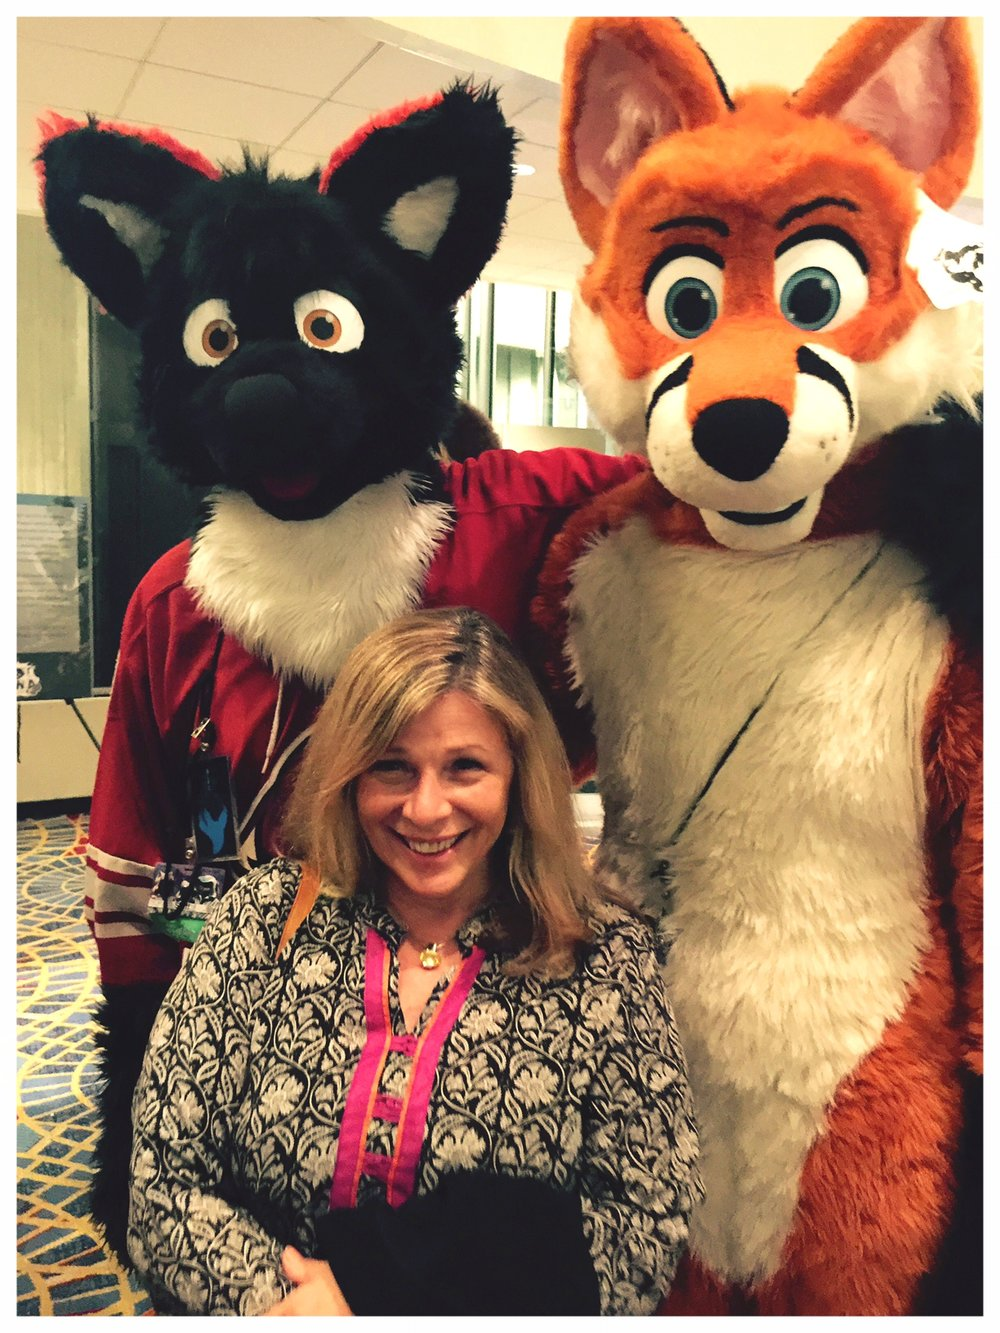 Furries convention, Atlanta, GA